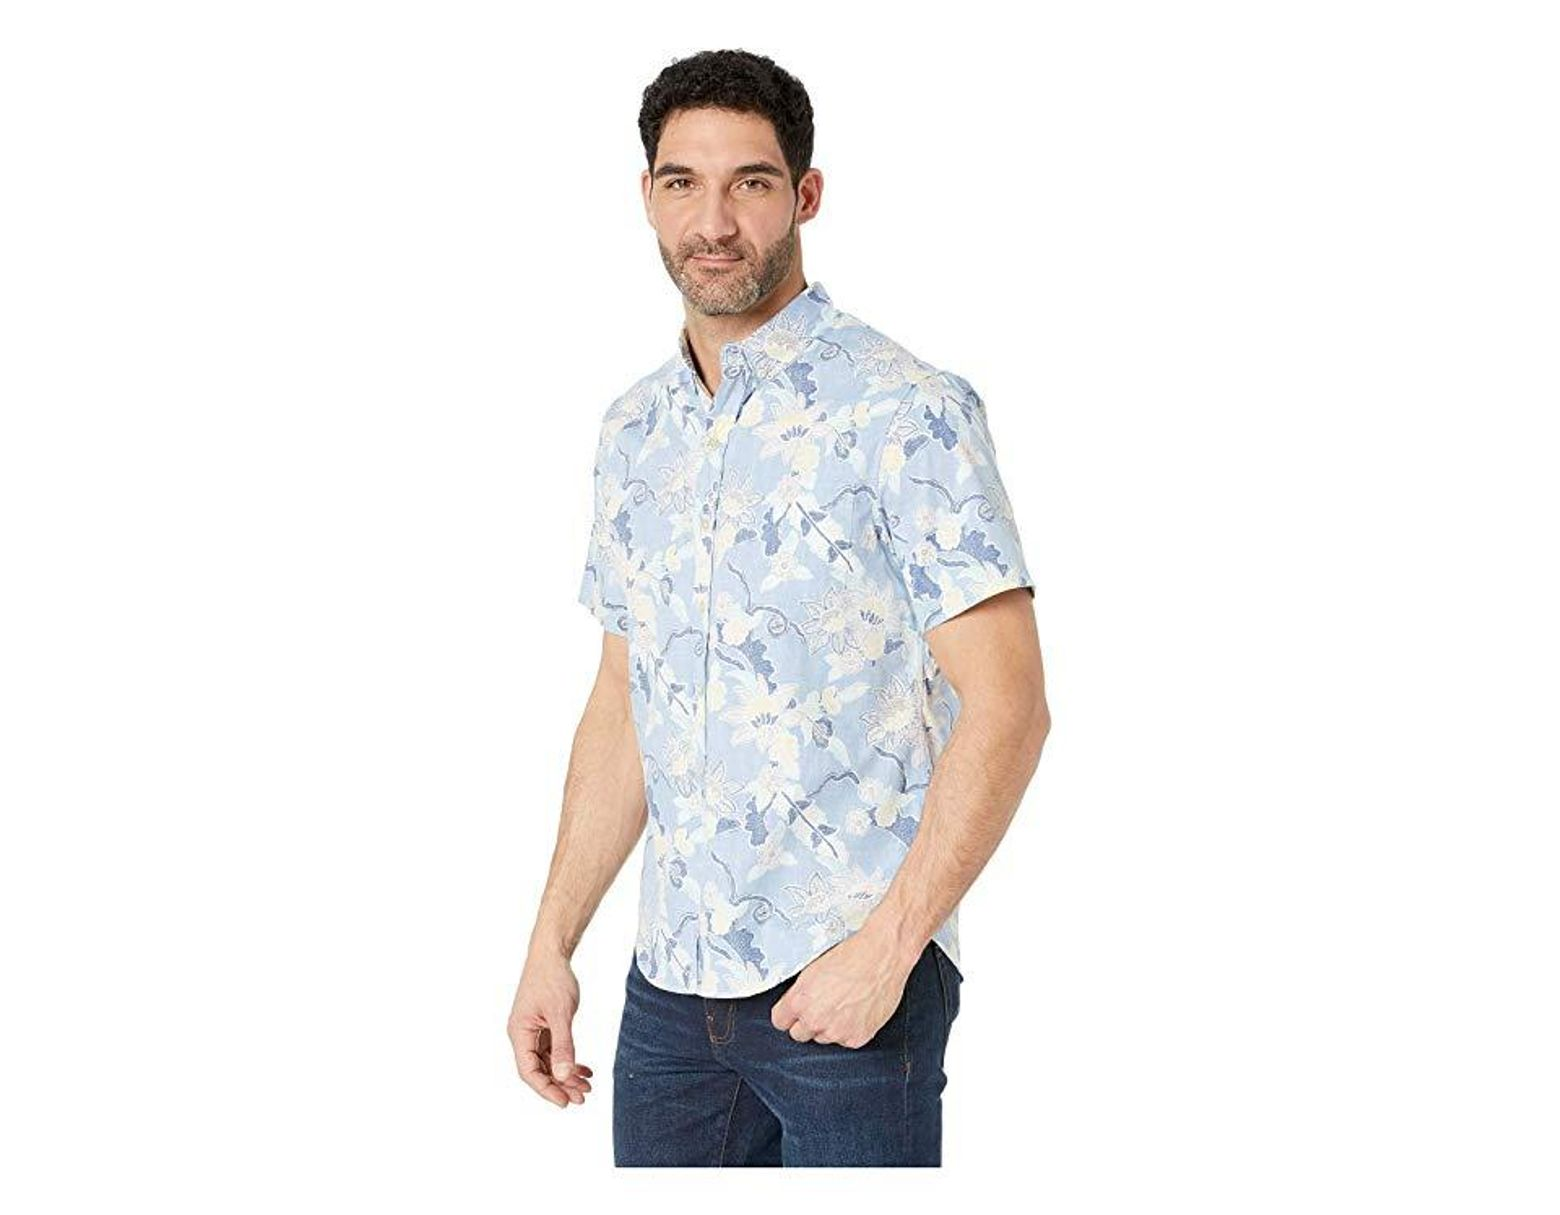 d1526556 Reyn Spooner Mahaloha Tailored Fit Hawaiian Shirt (allure) Short Sleeve  Button Up in Blue for Men - Save 50% - Lyst